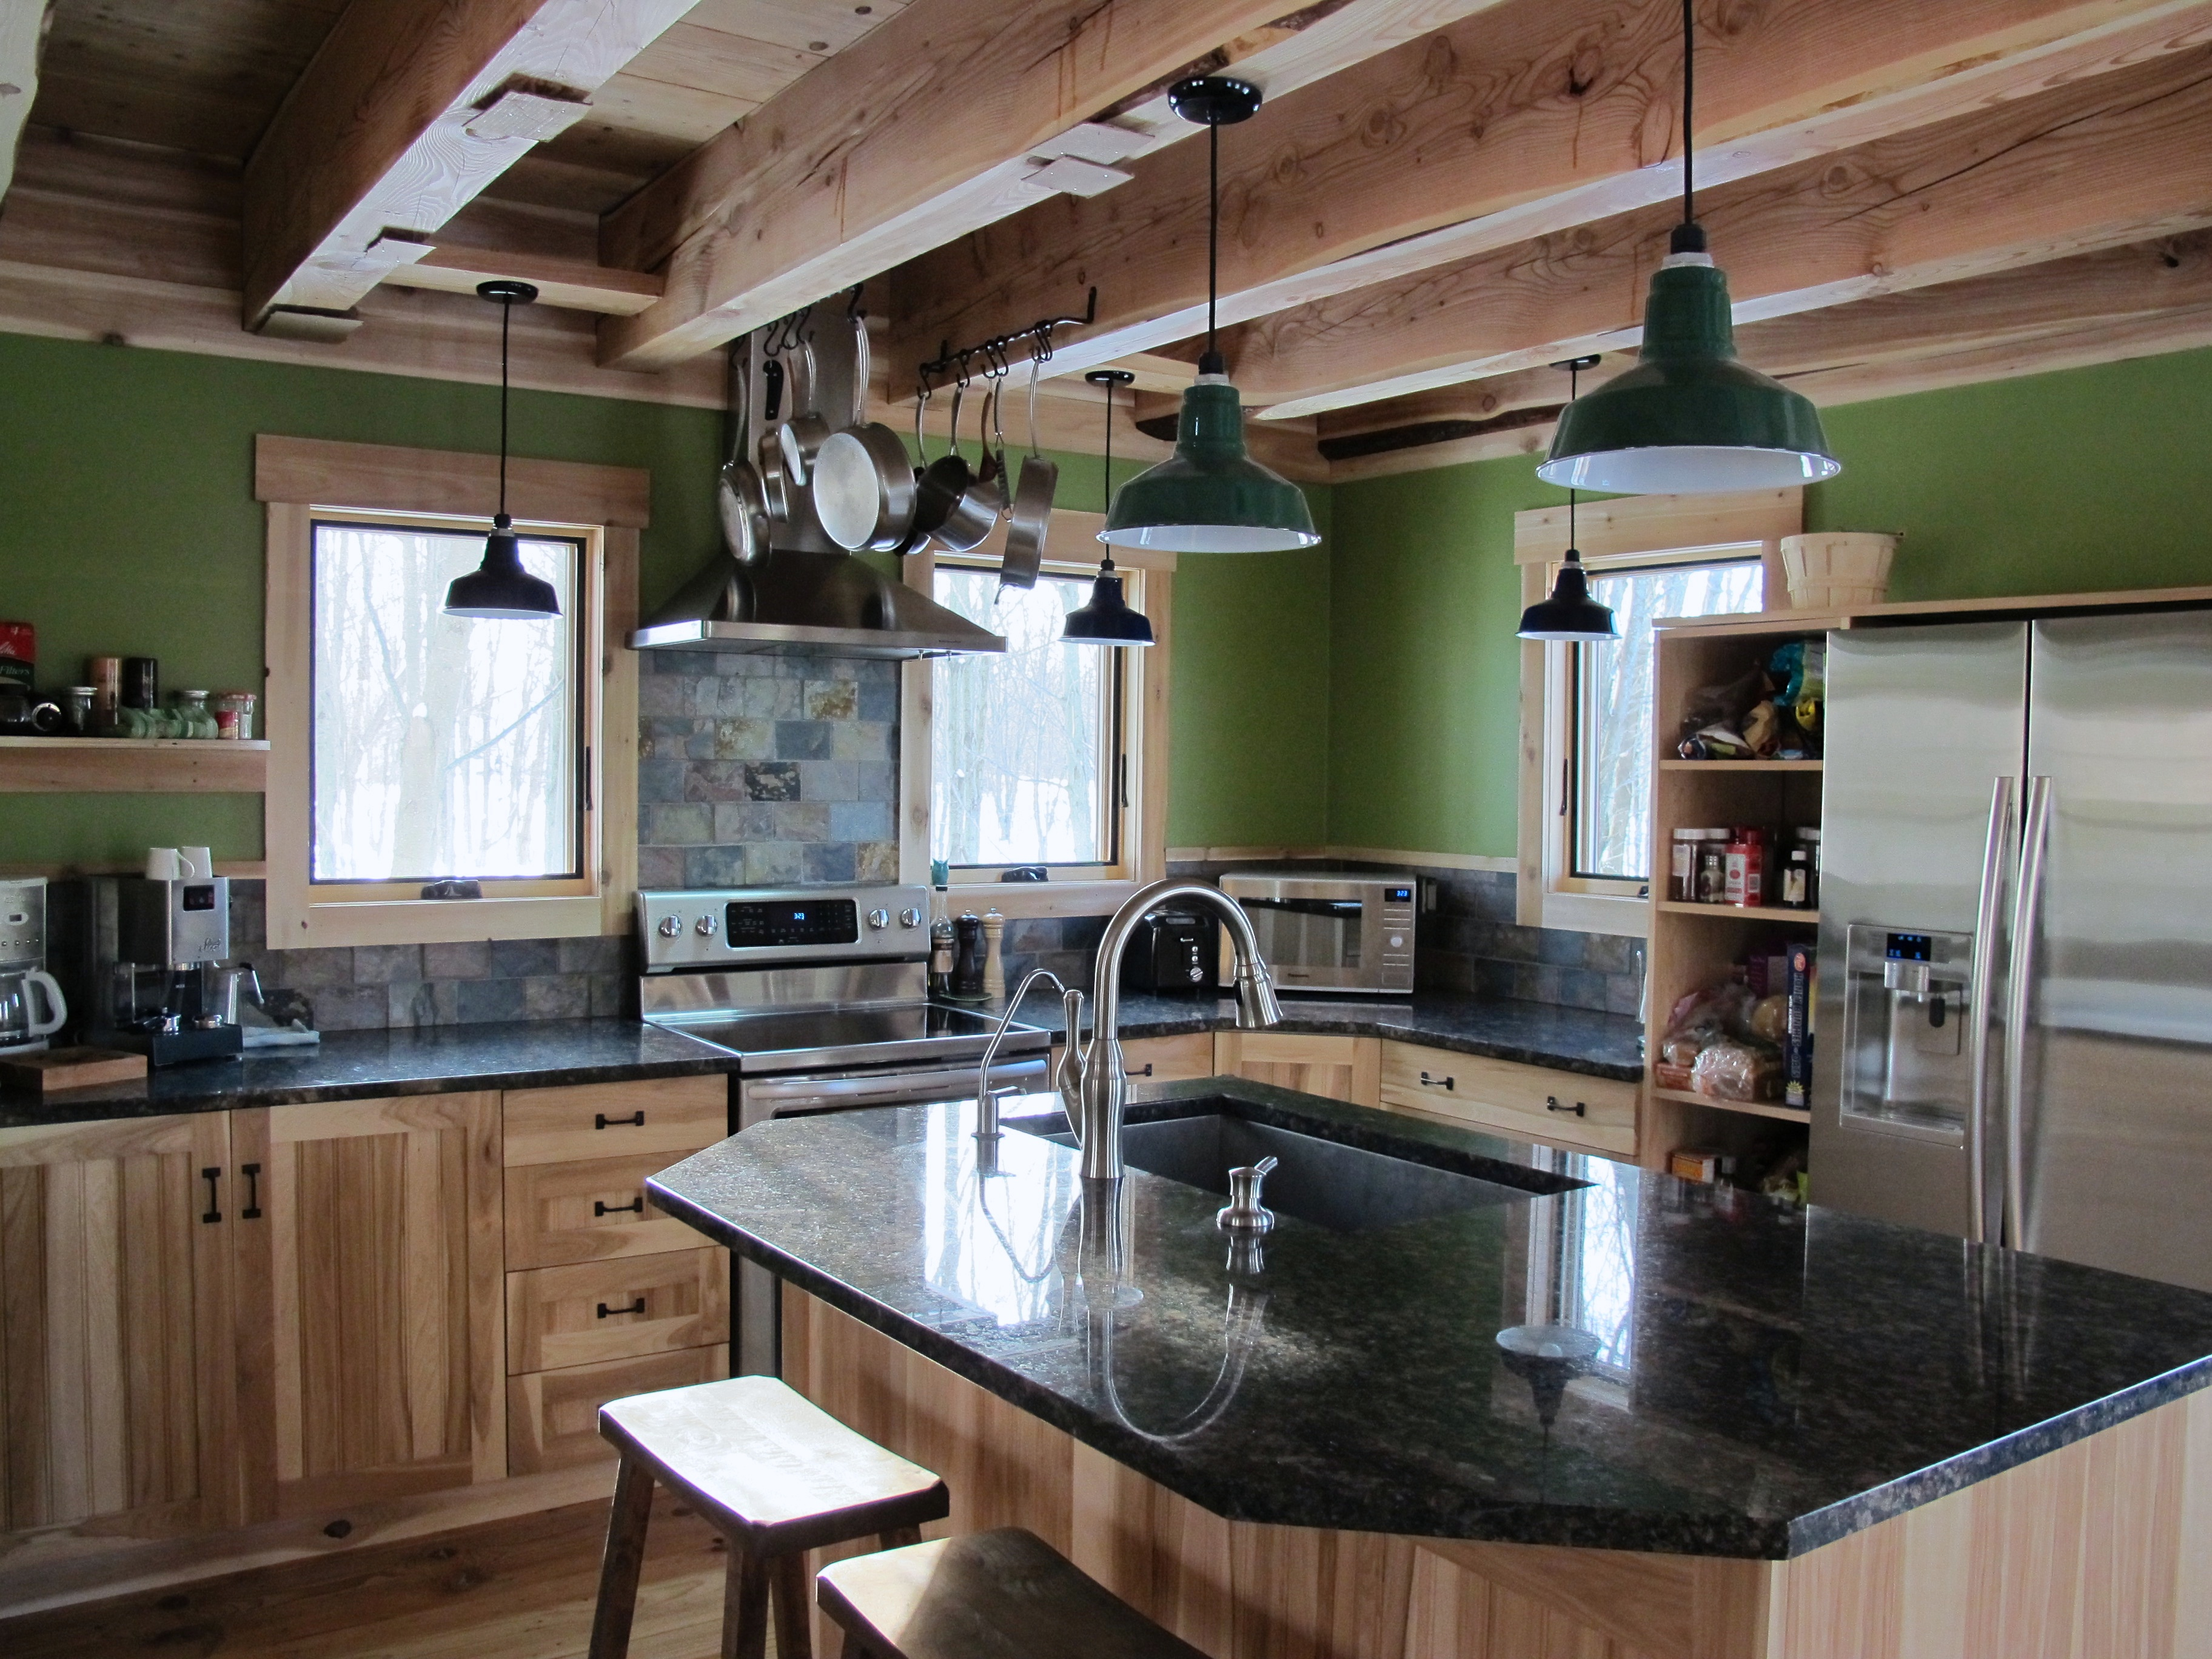 Porcelain Barn Lights Give Rustic Look to Farmhouse ...